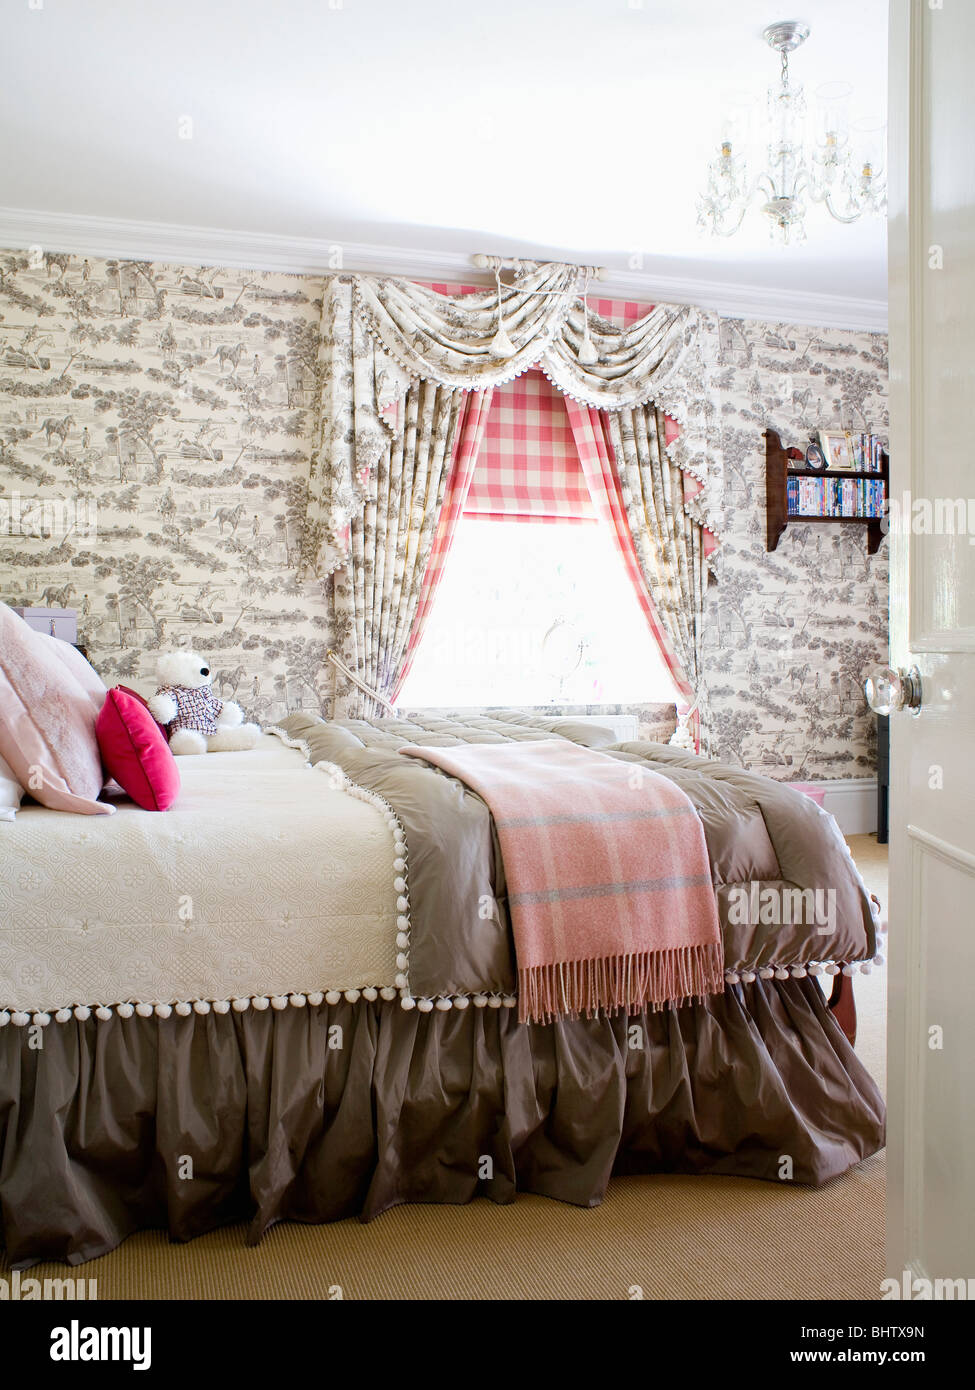 grauen toile de jouy tapeten und vorh nge im land schlafzimmer mit roten aufgegebenes rollo am. Black Bedroom Furniture Sets. Home Design Ideas